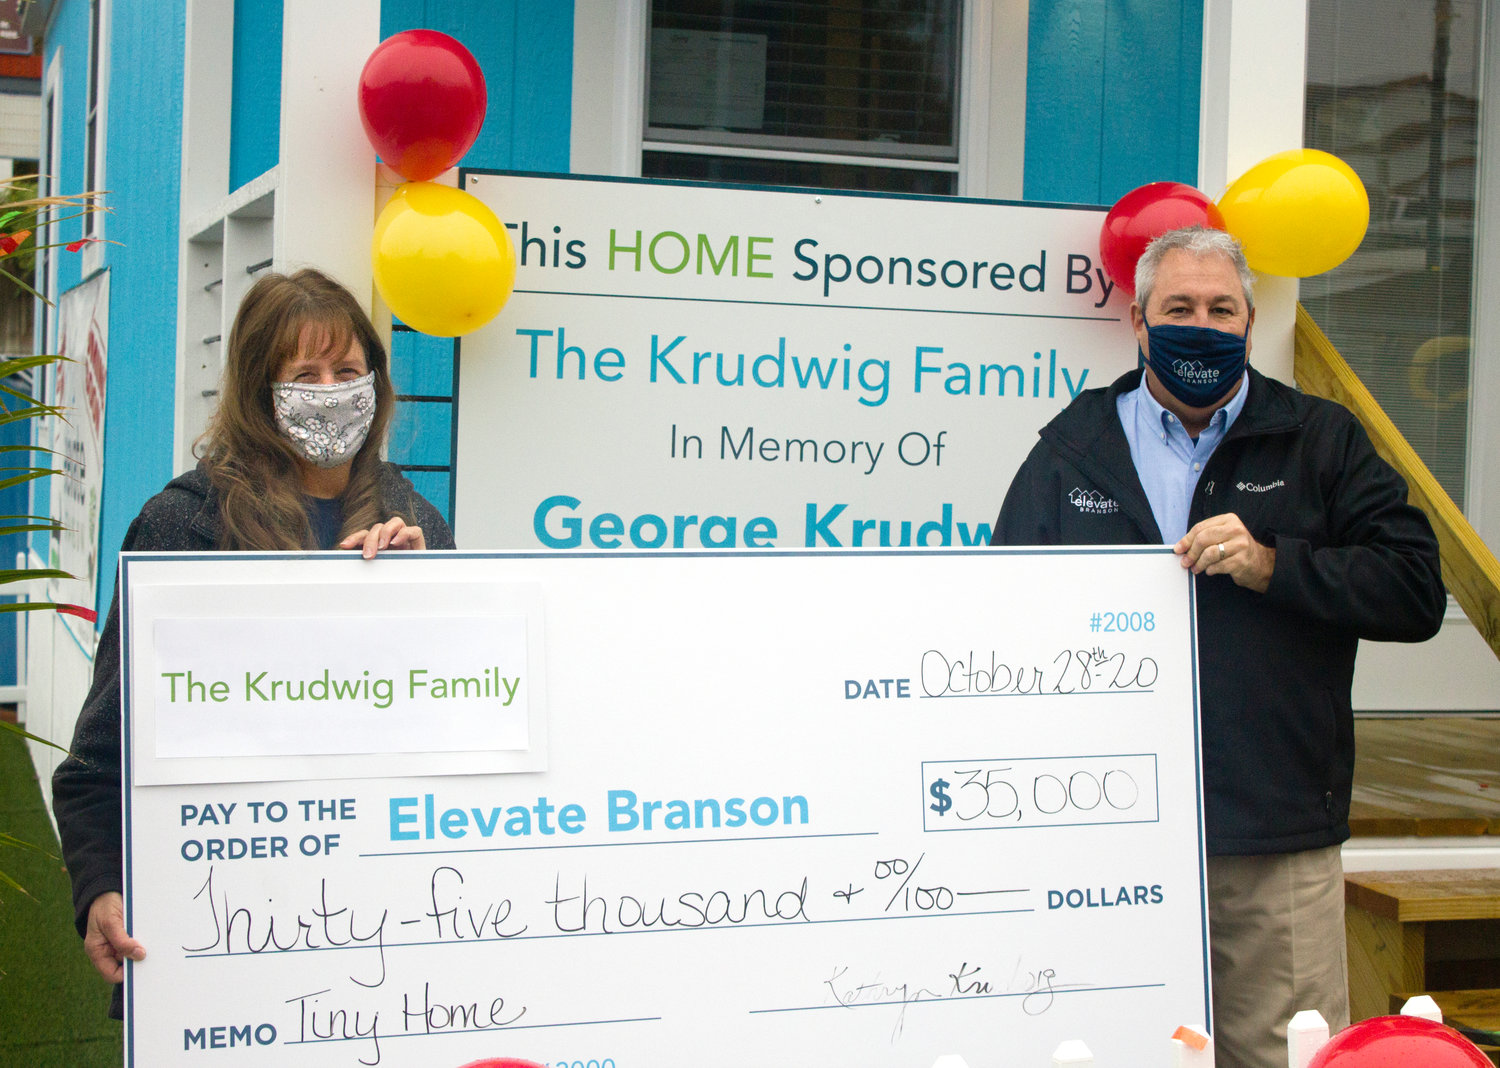 Kathy Krudwig presents a check to Elevate Branson founder Bryan Stallings.